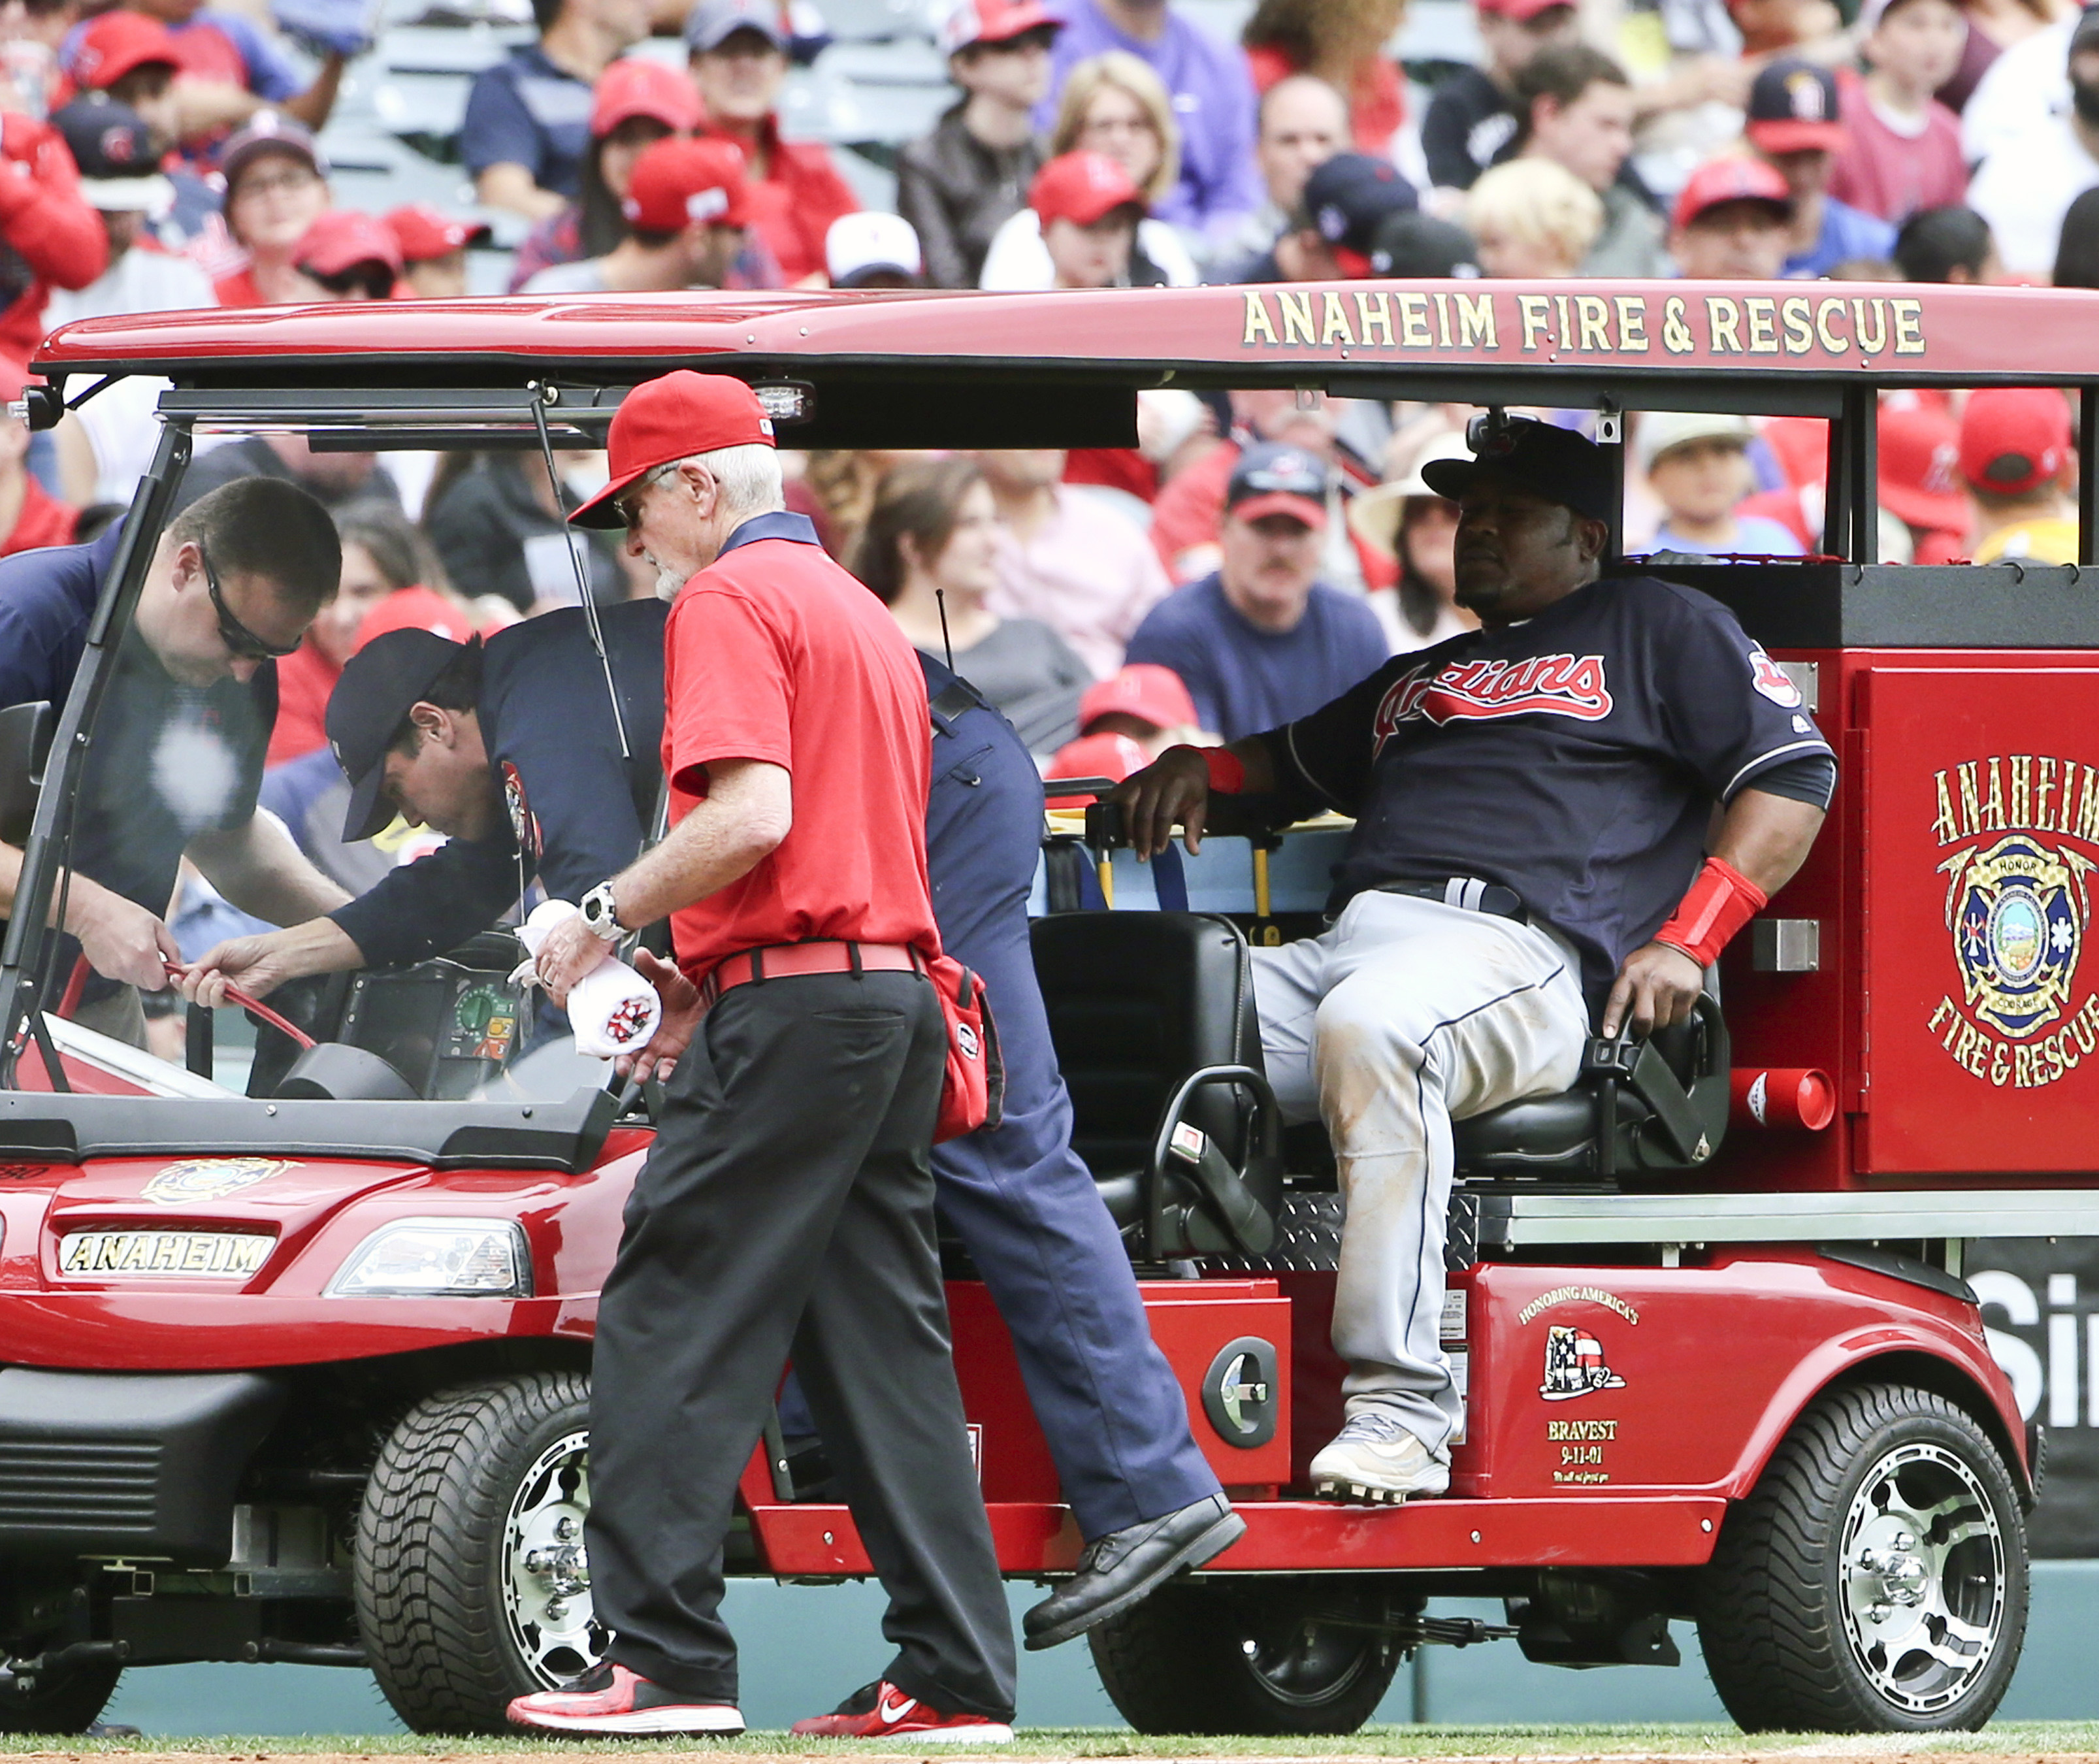 Cleveland Indians third baseman Juan Uribe sits in the back of a cart after being injured while fielding a ground ball in the fourth inning of a baseball game against the Los Angeles Angels, Sunday, June 12, 2016, in Anaheim, Calif. Uribe left the game. (